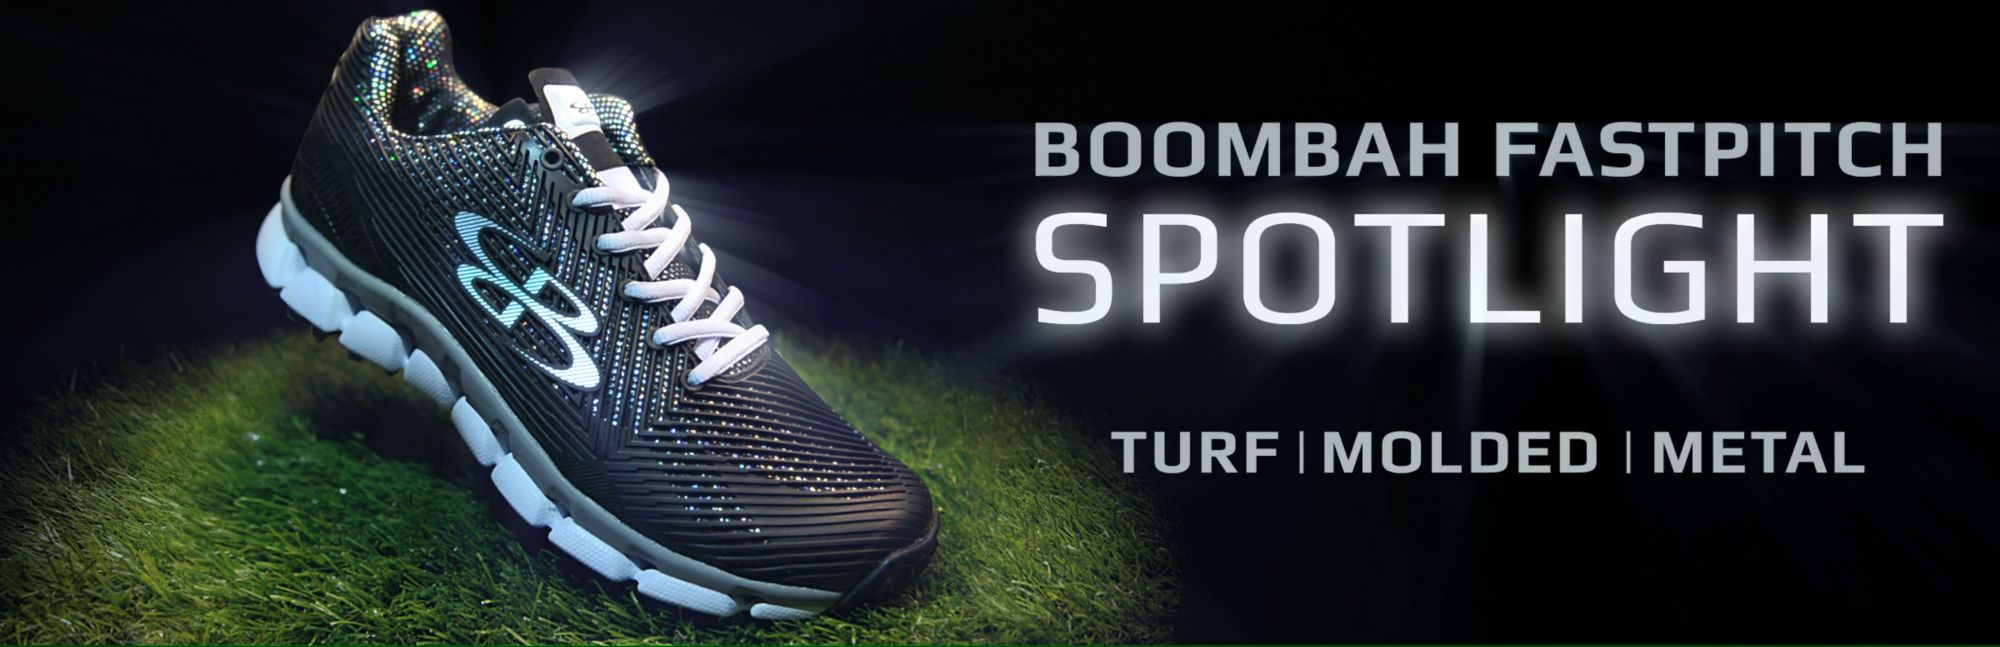 Boombah Fastpitch Spotlight Series Shoes